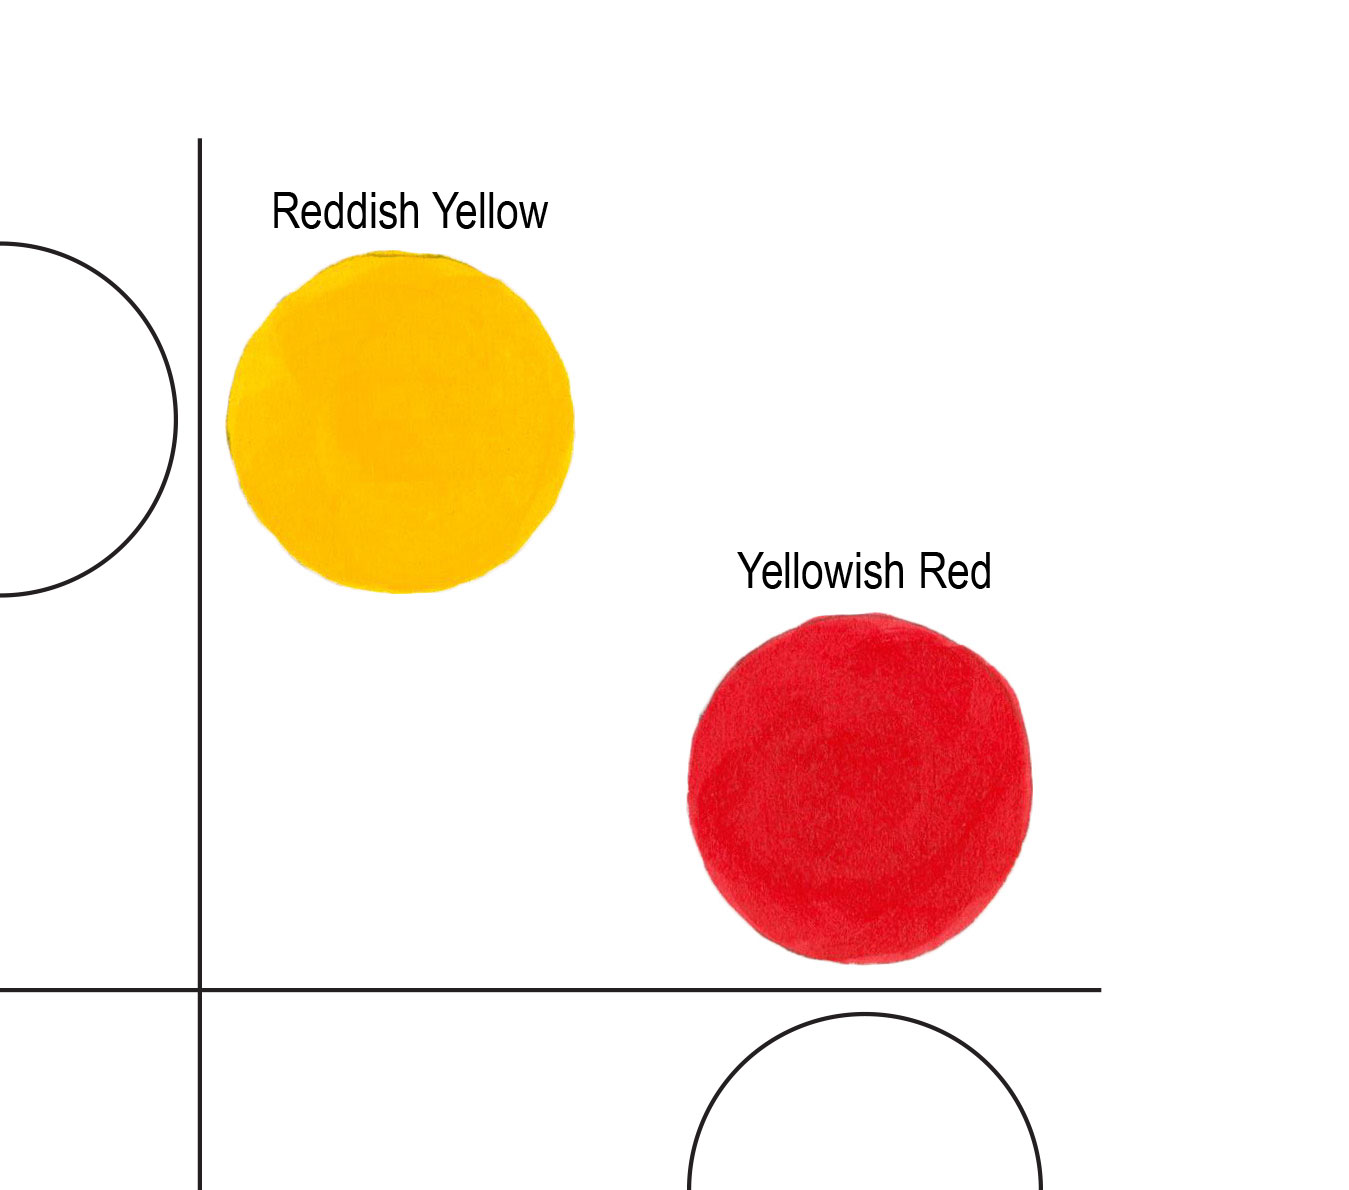 Figure 4: The Yellow Red Quadrant contains a reddish yellow and yellowish red.